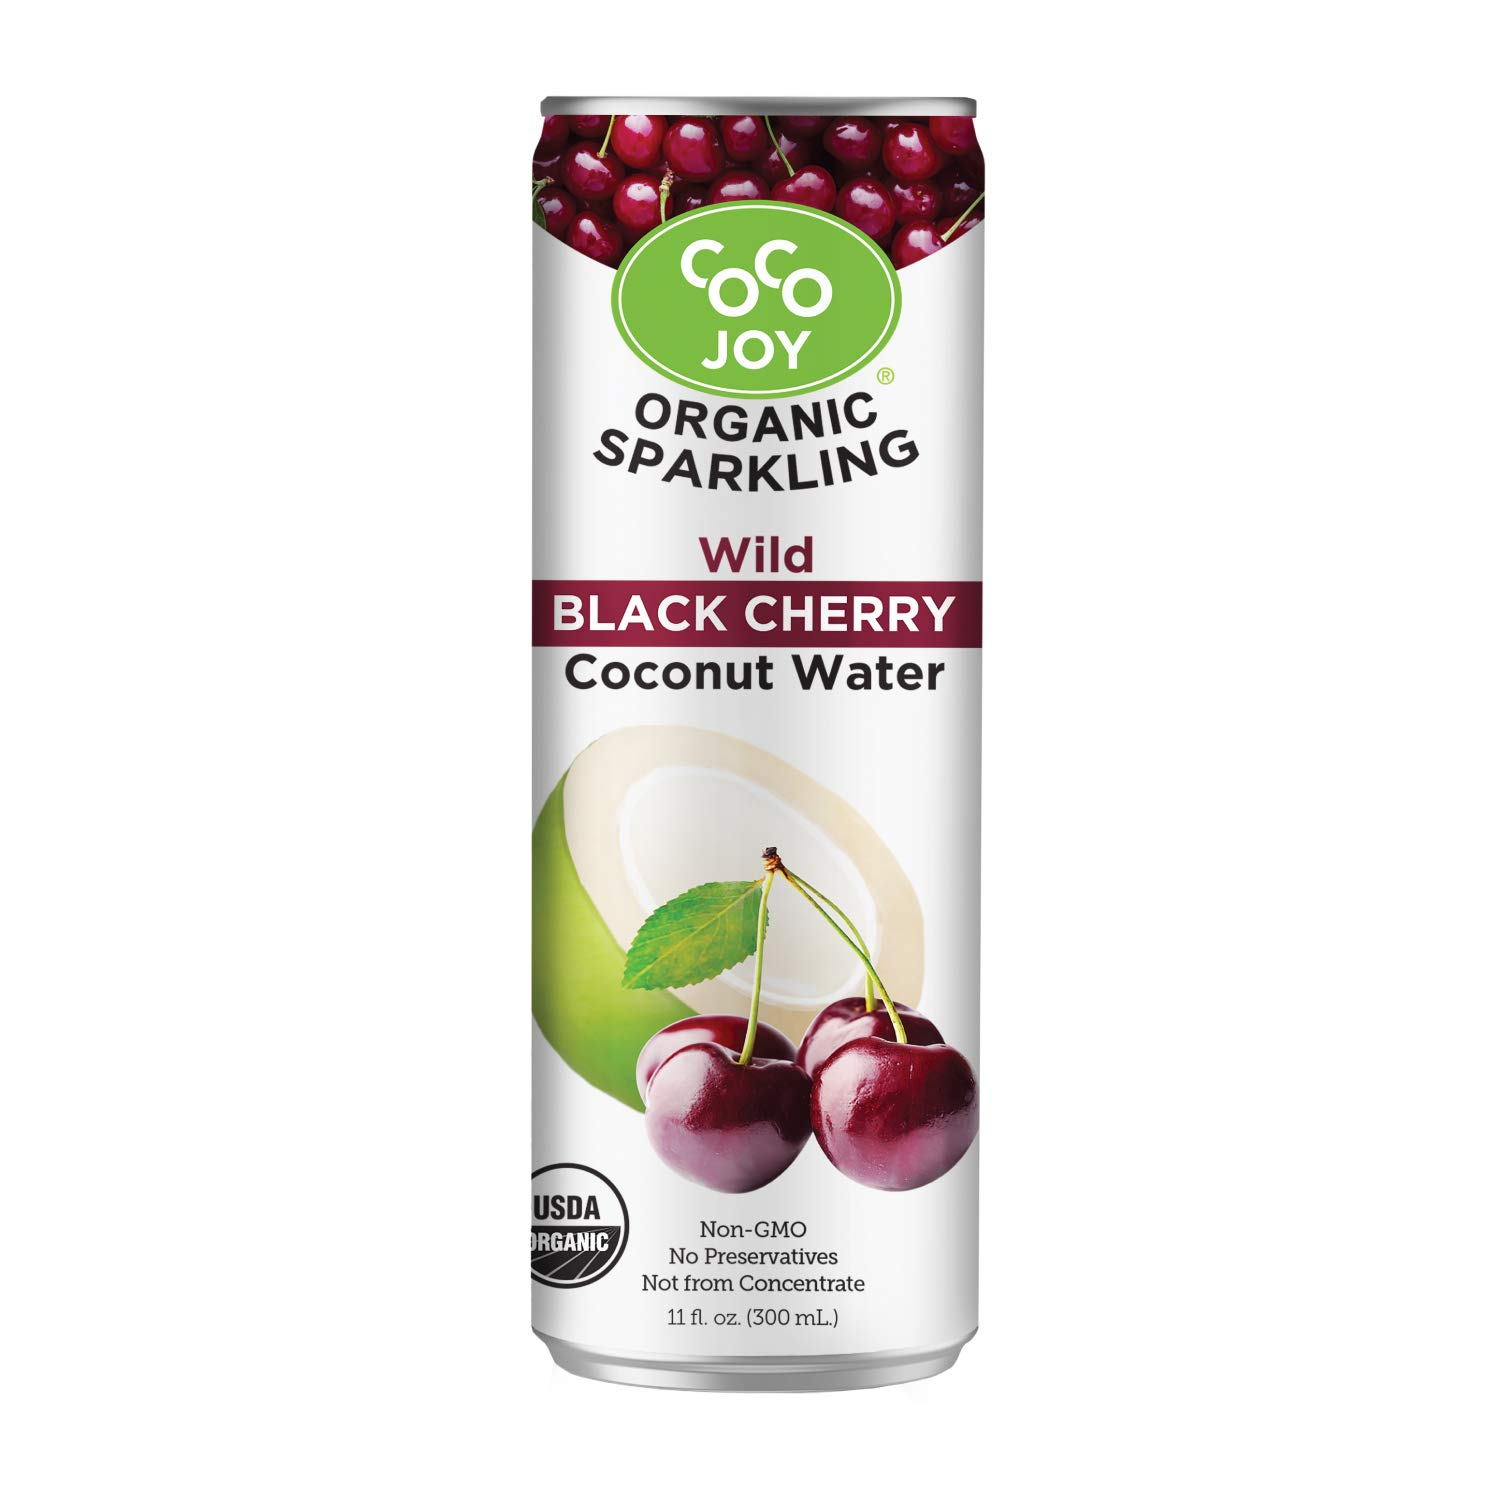 100% Organic Premium Sparkling Coco Joy Coconut Water 11 Fl oz Can - Wild Black Cherry - 12 Pack - Refreshing, Non-GMO, Packed with Electrolytes, No Preservatives